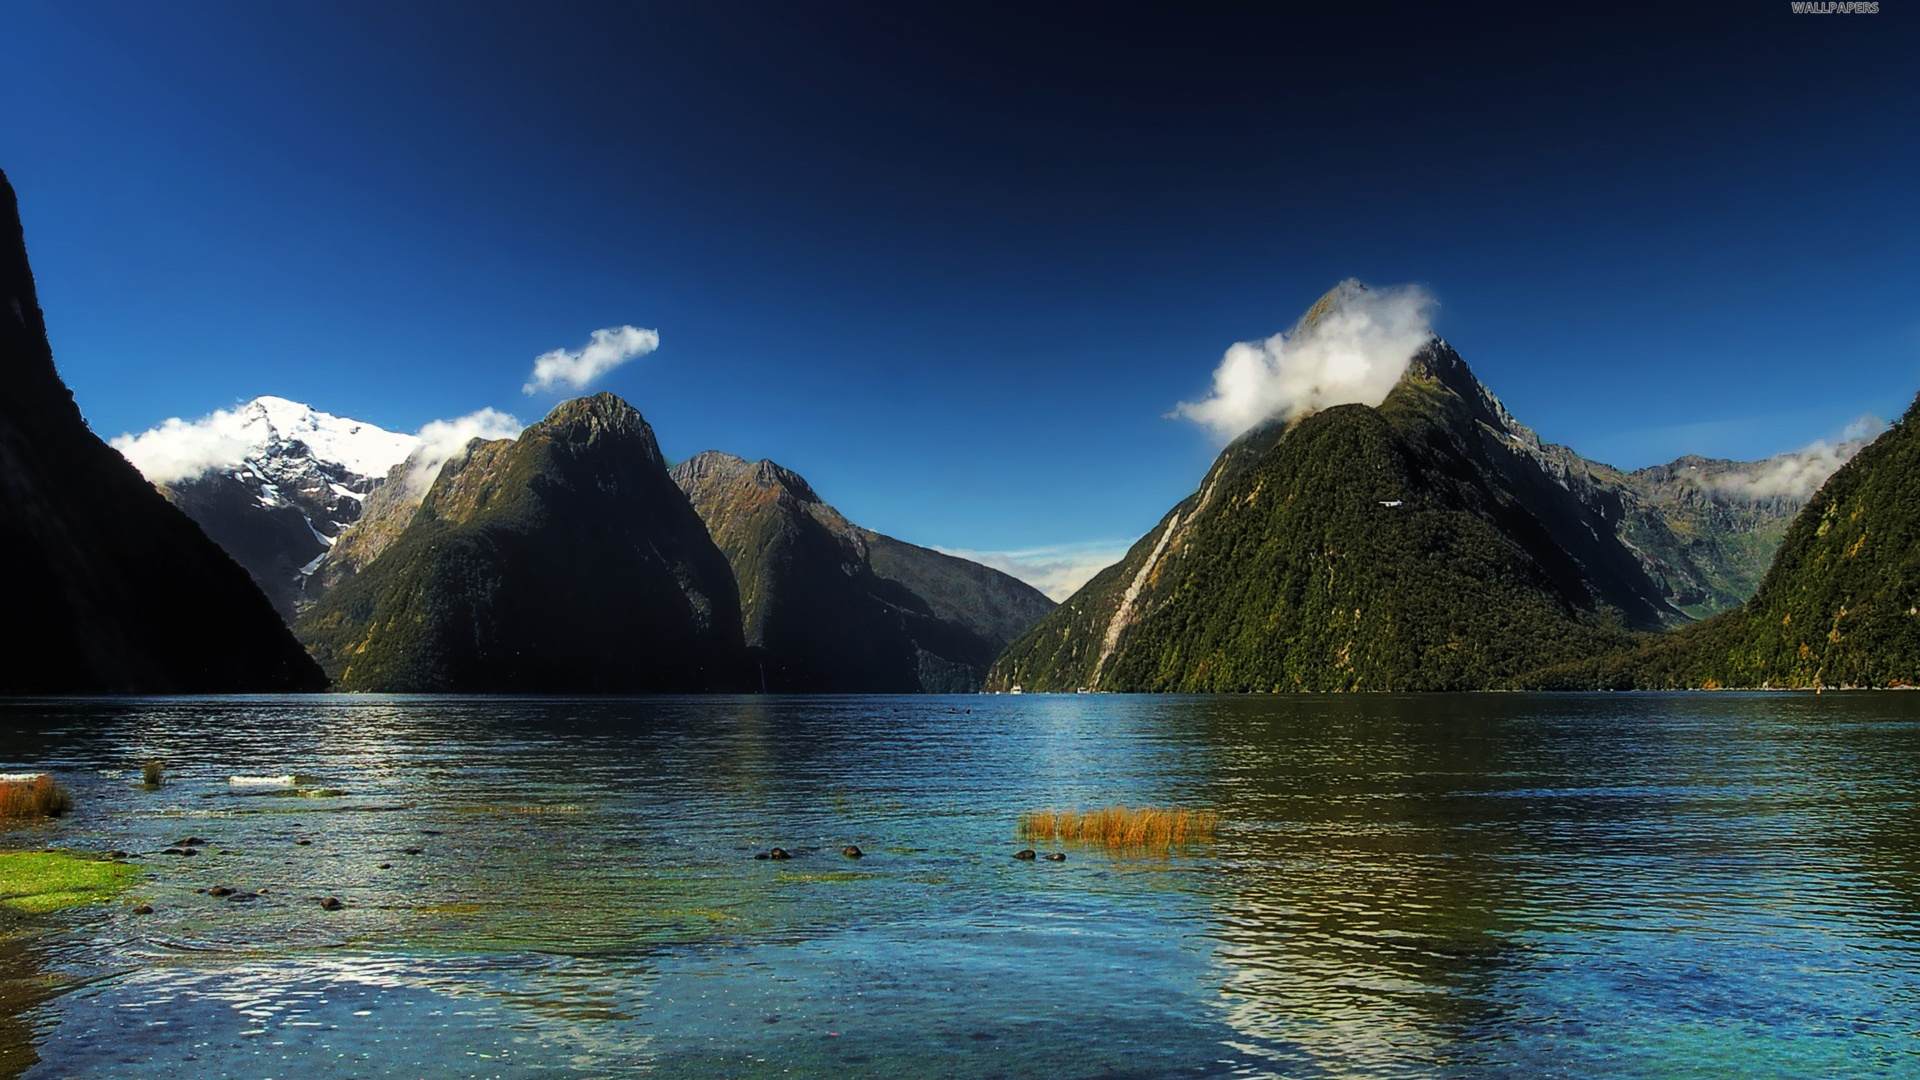 Atentat Noua Zeelanda Wallpaper: 1920x1080 Milford Sound New Zealand Desktop PC And Mac